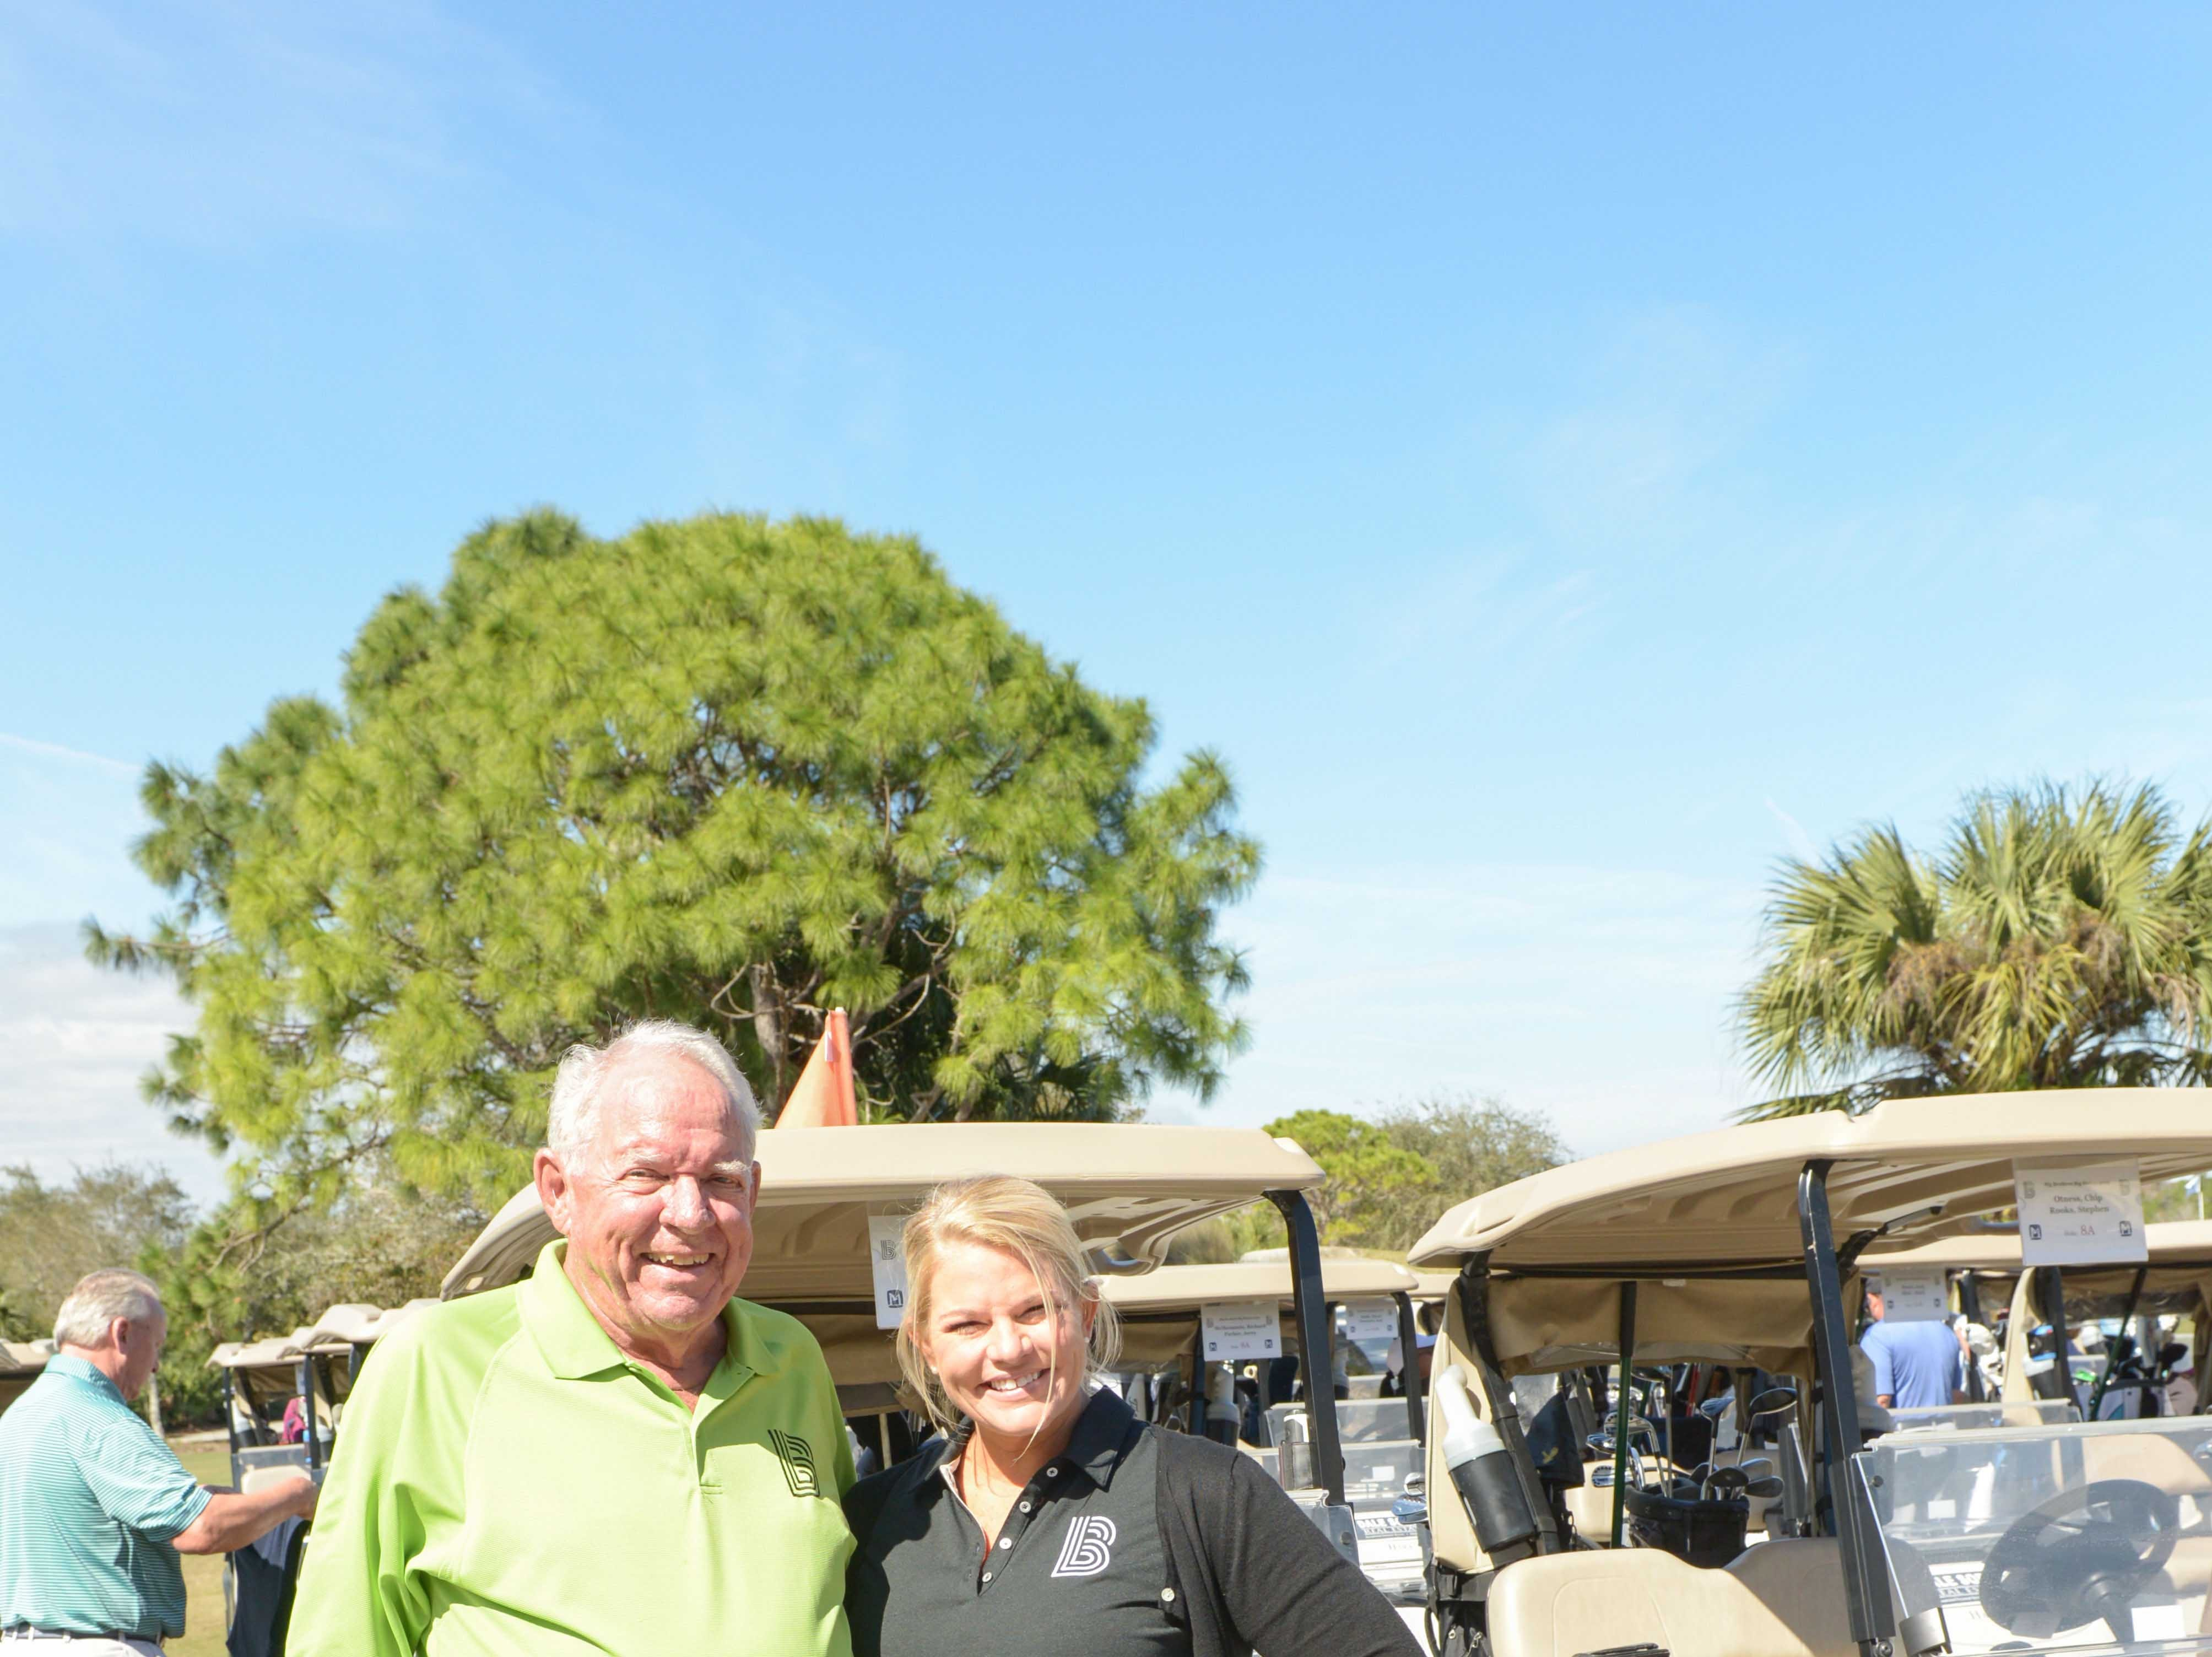 Board Chair-Elect and Sponsor Brad Lorimier and CEO Stacey Watson-Mesley at Hawk's Nest Golf Club for the Big Brothers Big Sisters Golf Tournament on Feb. 4.